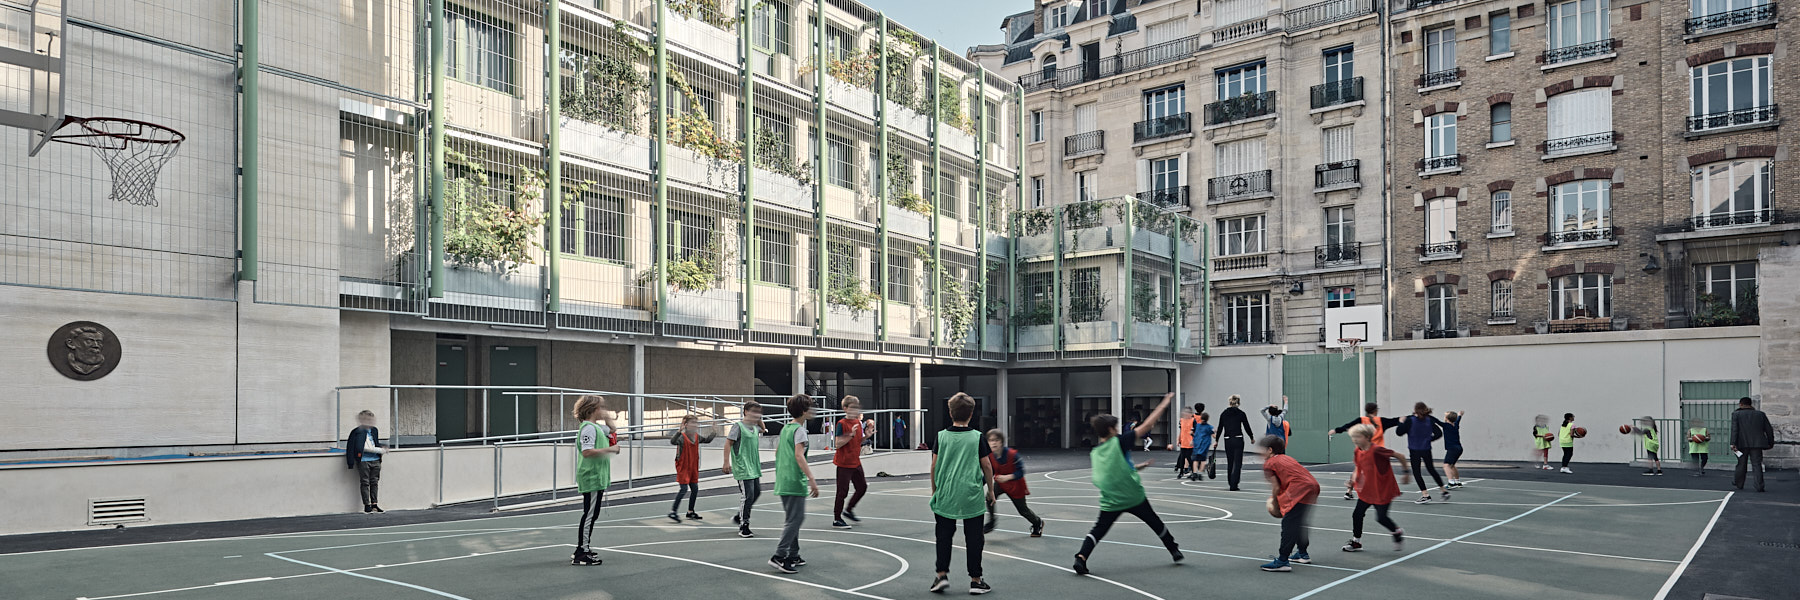 Extension école Massillon à Paris par Tordjeman architectes et Brezillon